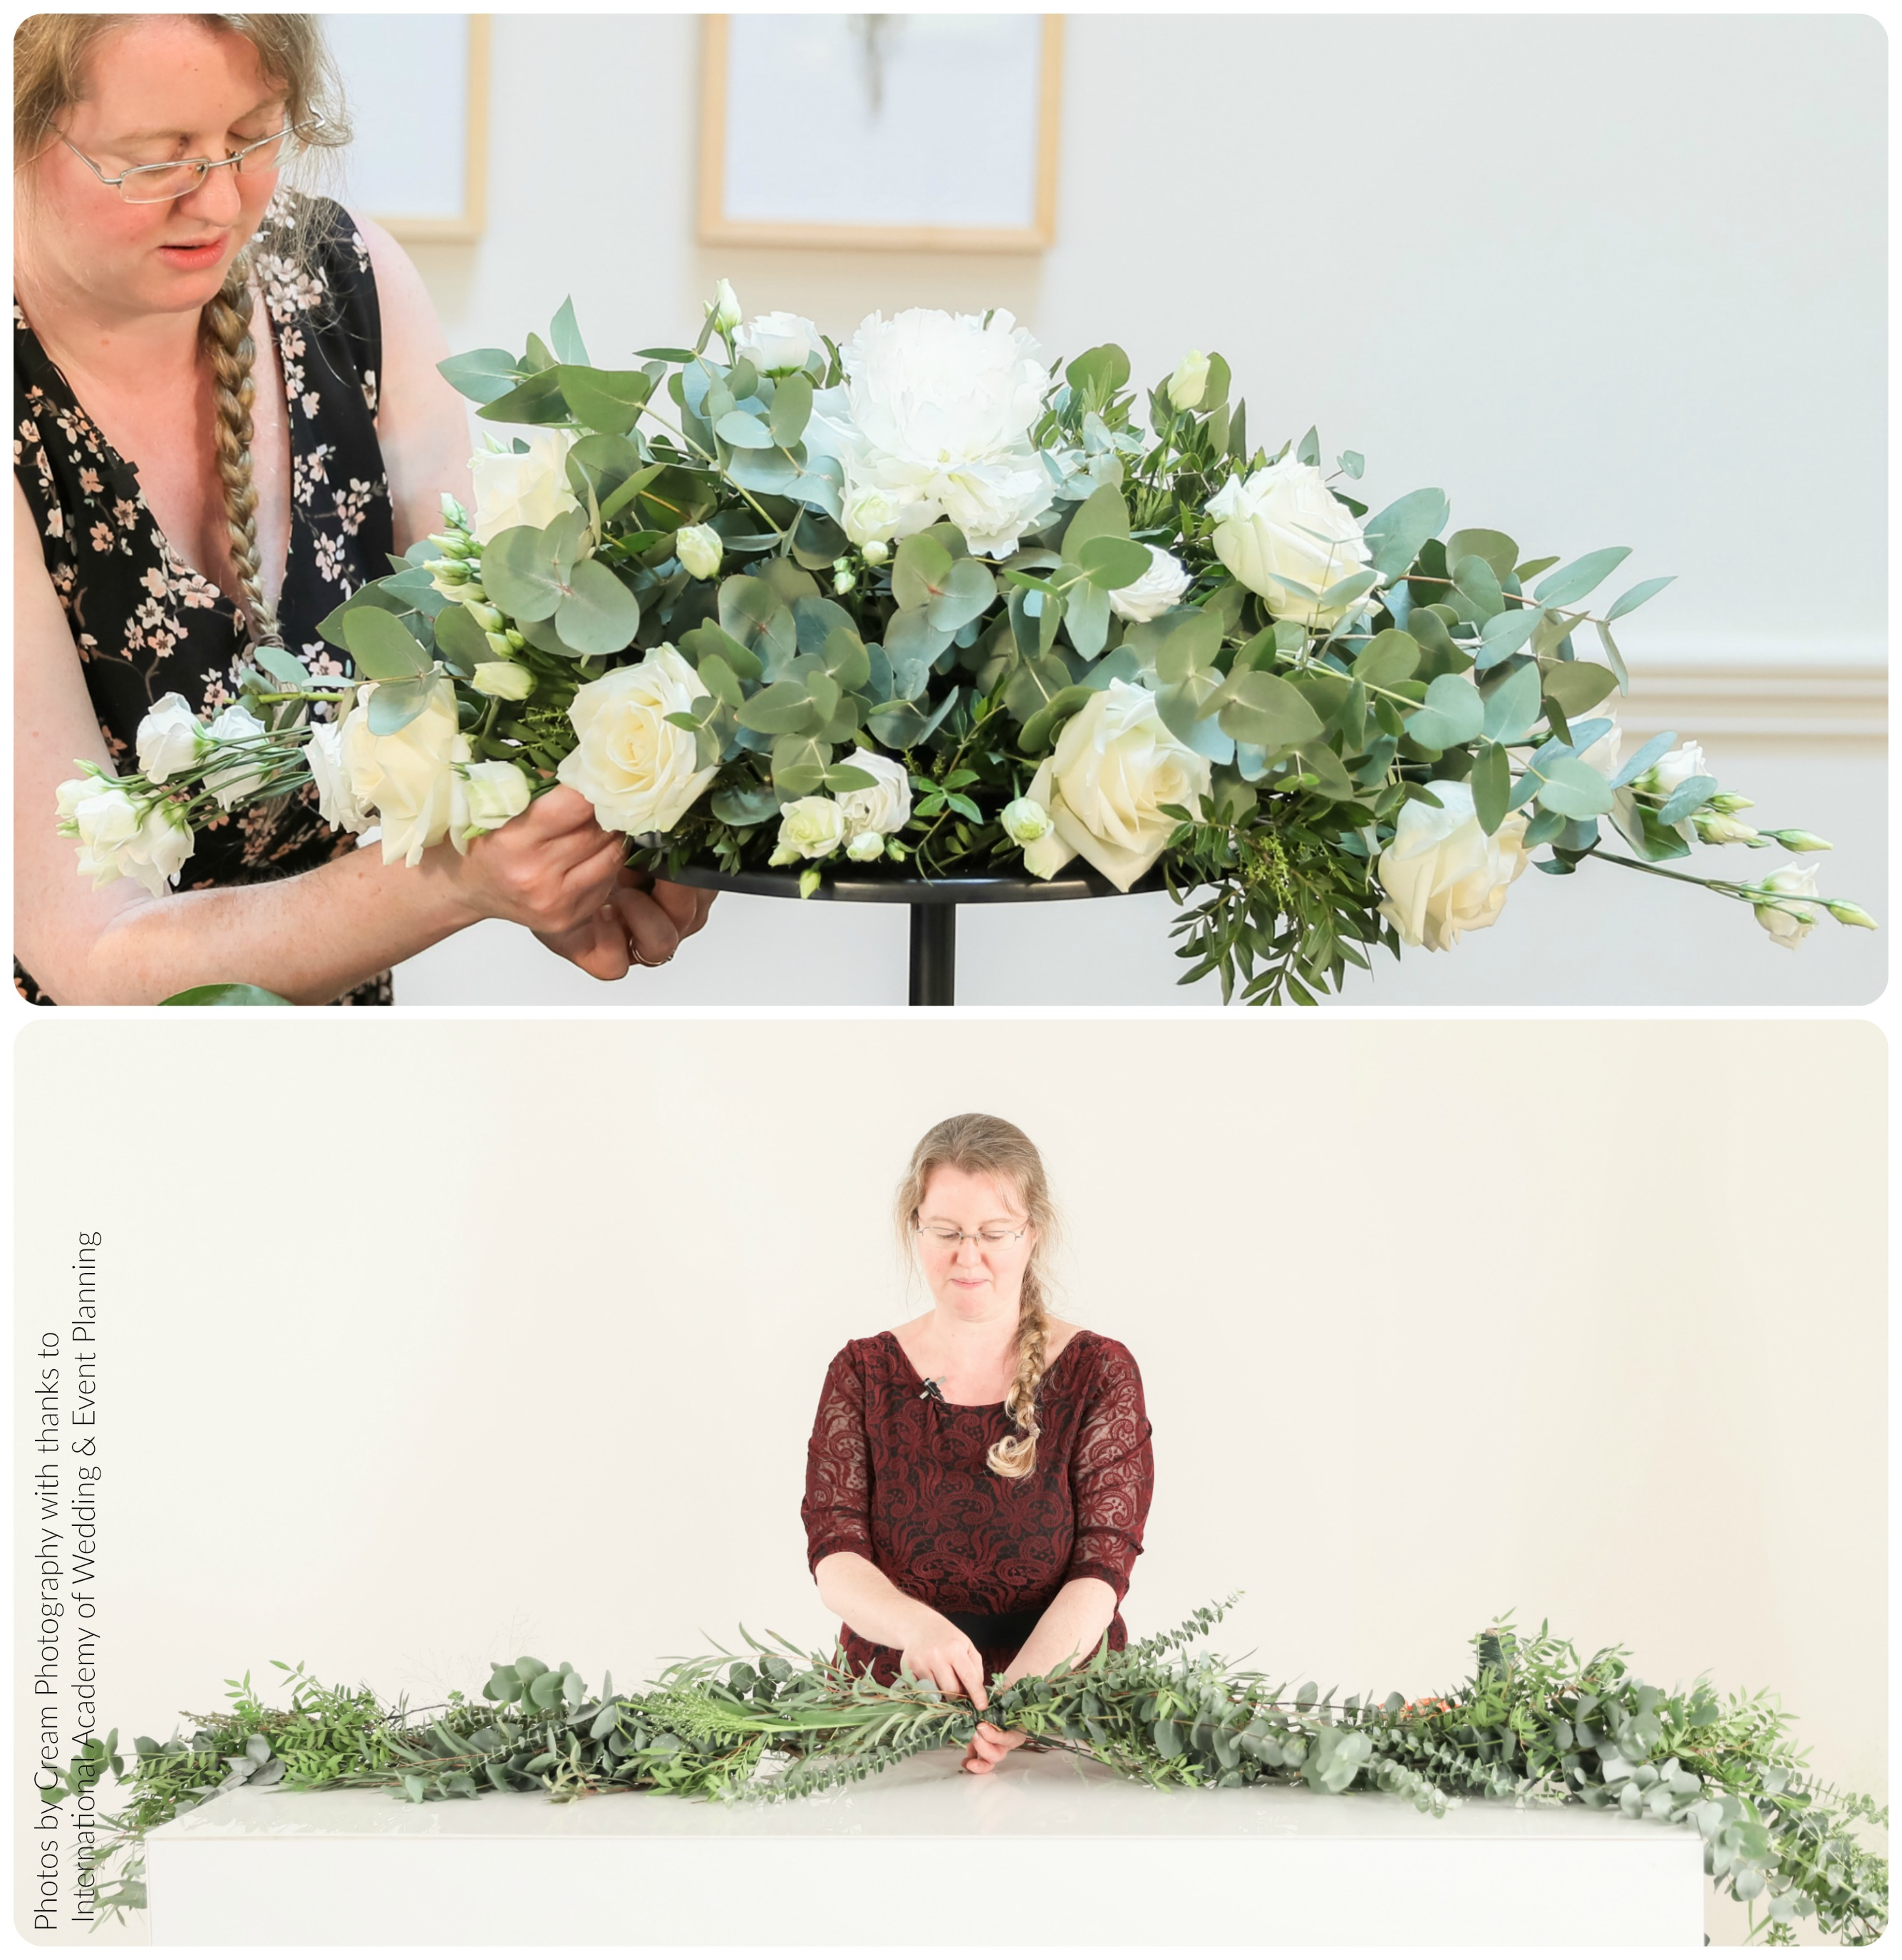 DIY Wedding Flower Workshop by Dee McMeeking